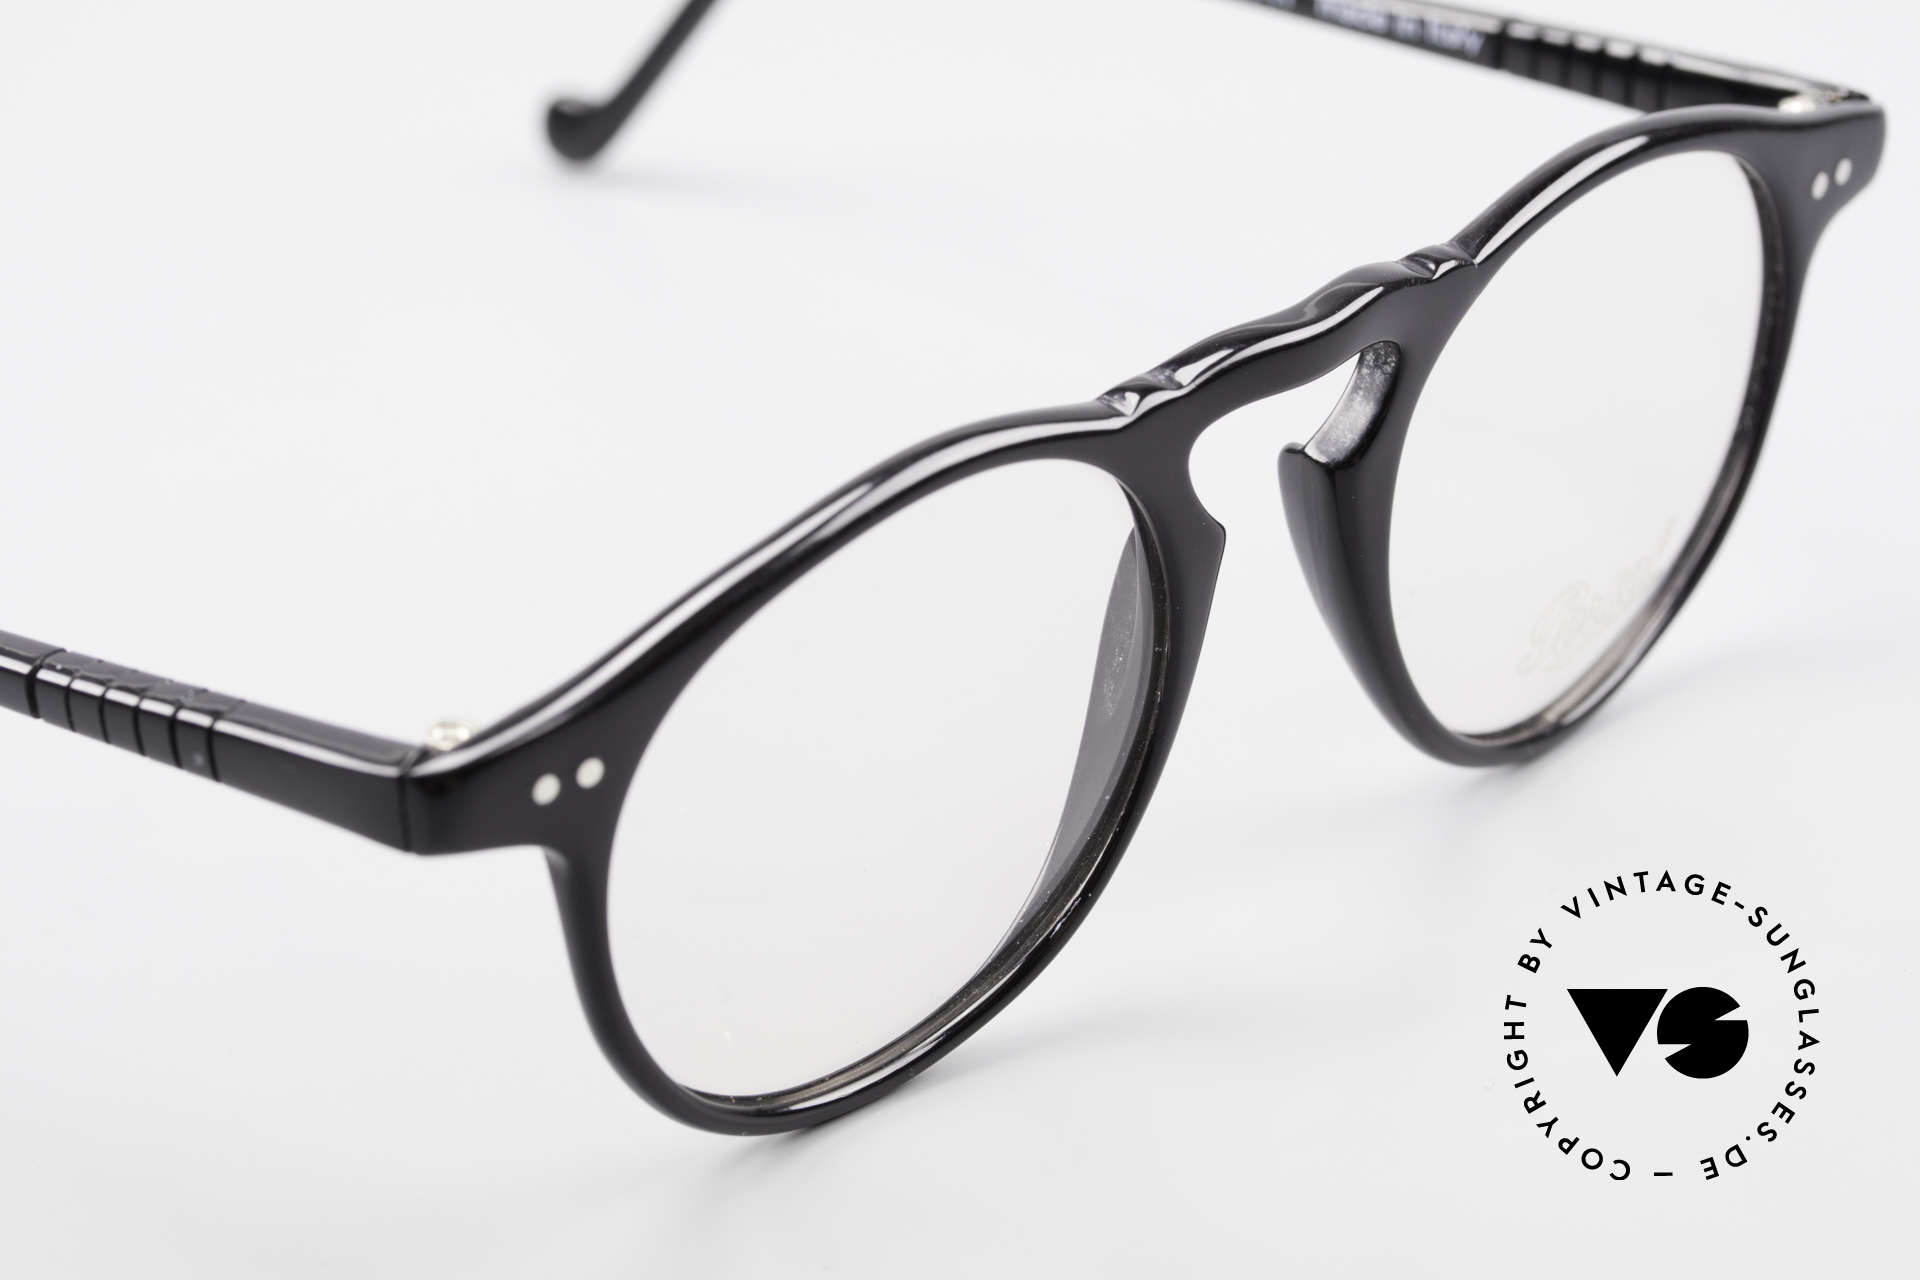 Persol 750 Ratti 80's Vintage Panto Eyeglasses, NO RETRO GLASSES, but an ORIGINAL of the 80's, Made for Men and Women